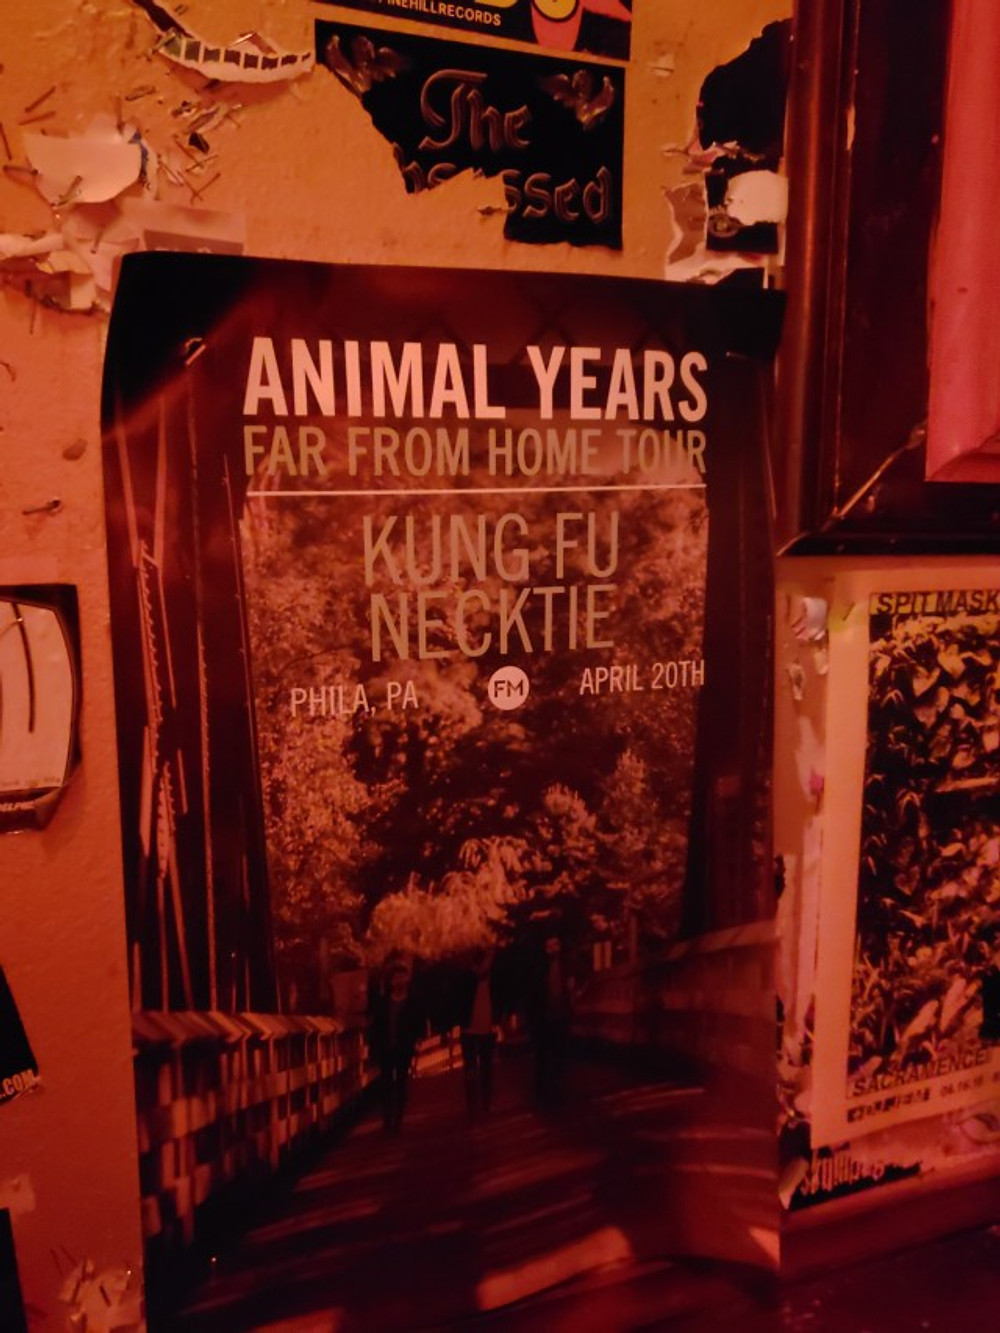 The Animal Years tour poster hanging on the wall.